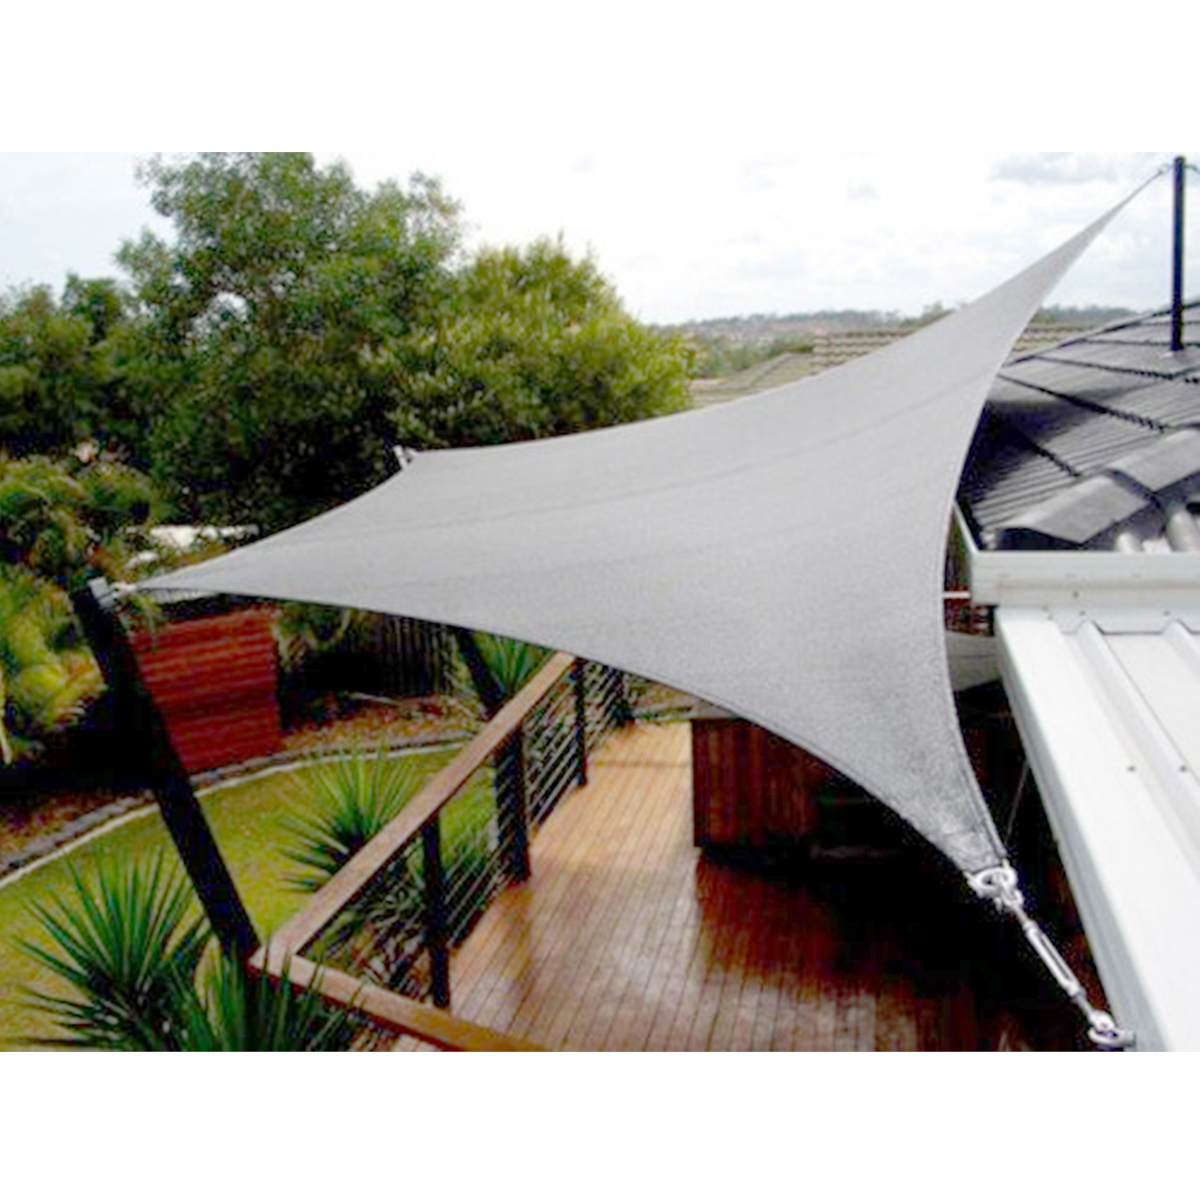 Sun Shade Sail Outdoor Garden Canopy Patio Cover UV Wind Waterproof Block